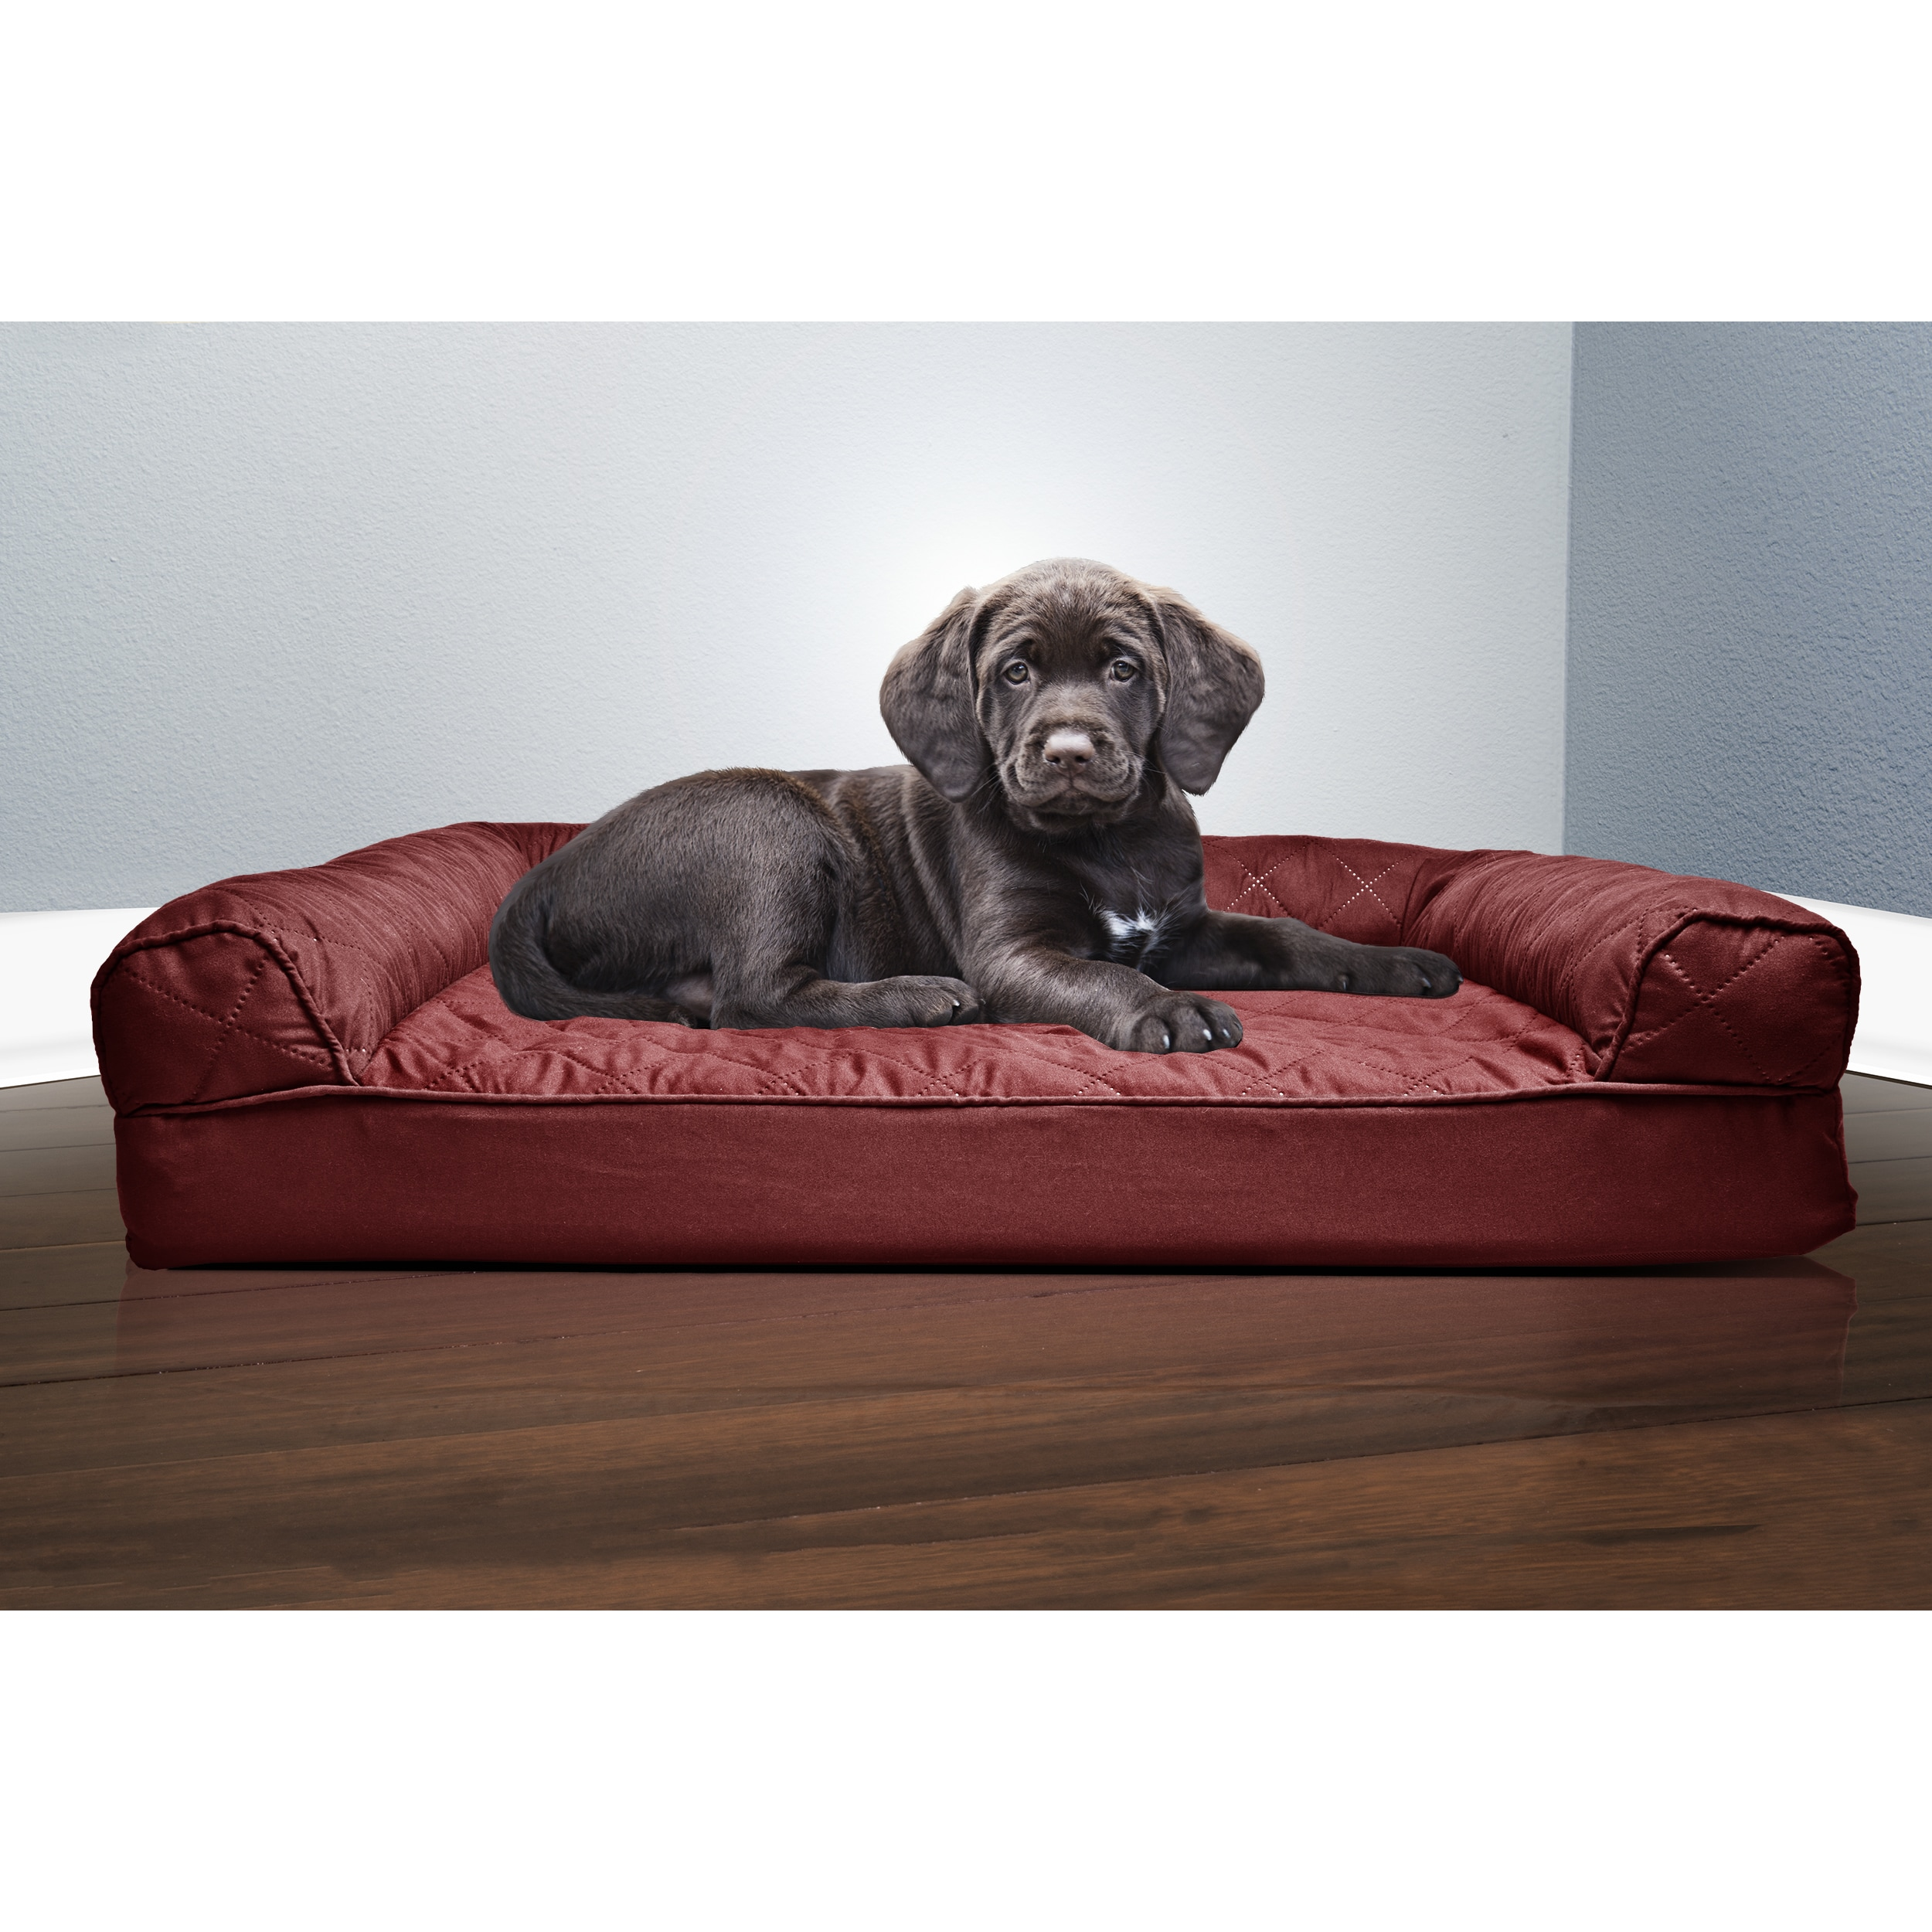 FurHaven Quilted Orthopedic Sofa-Style Pet Bed